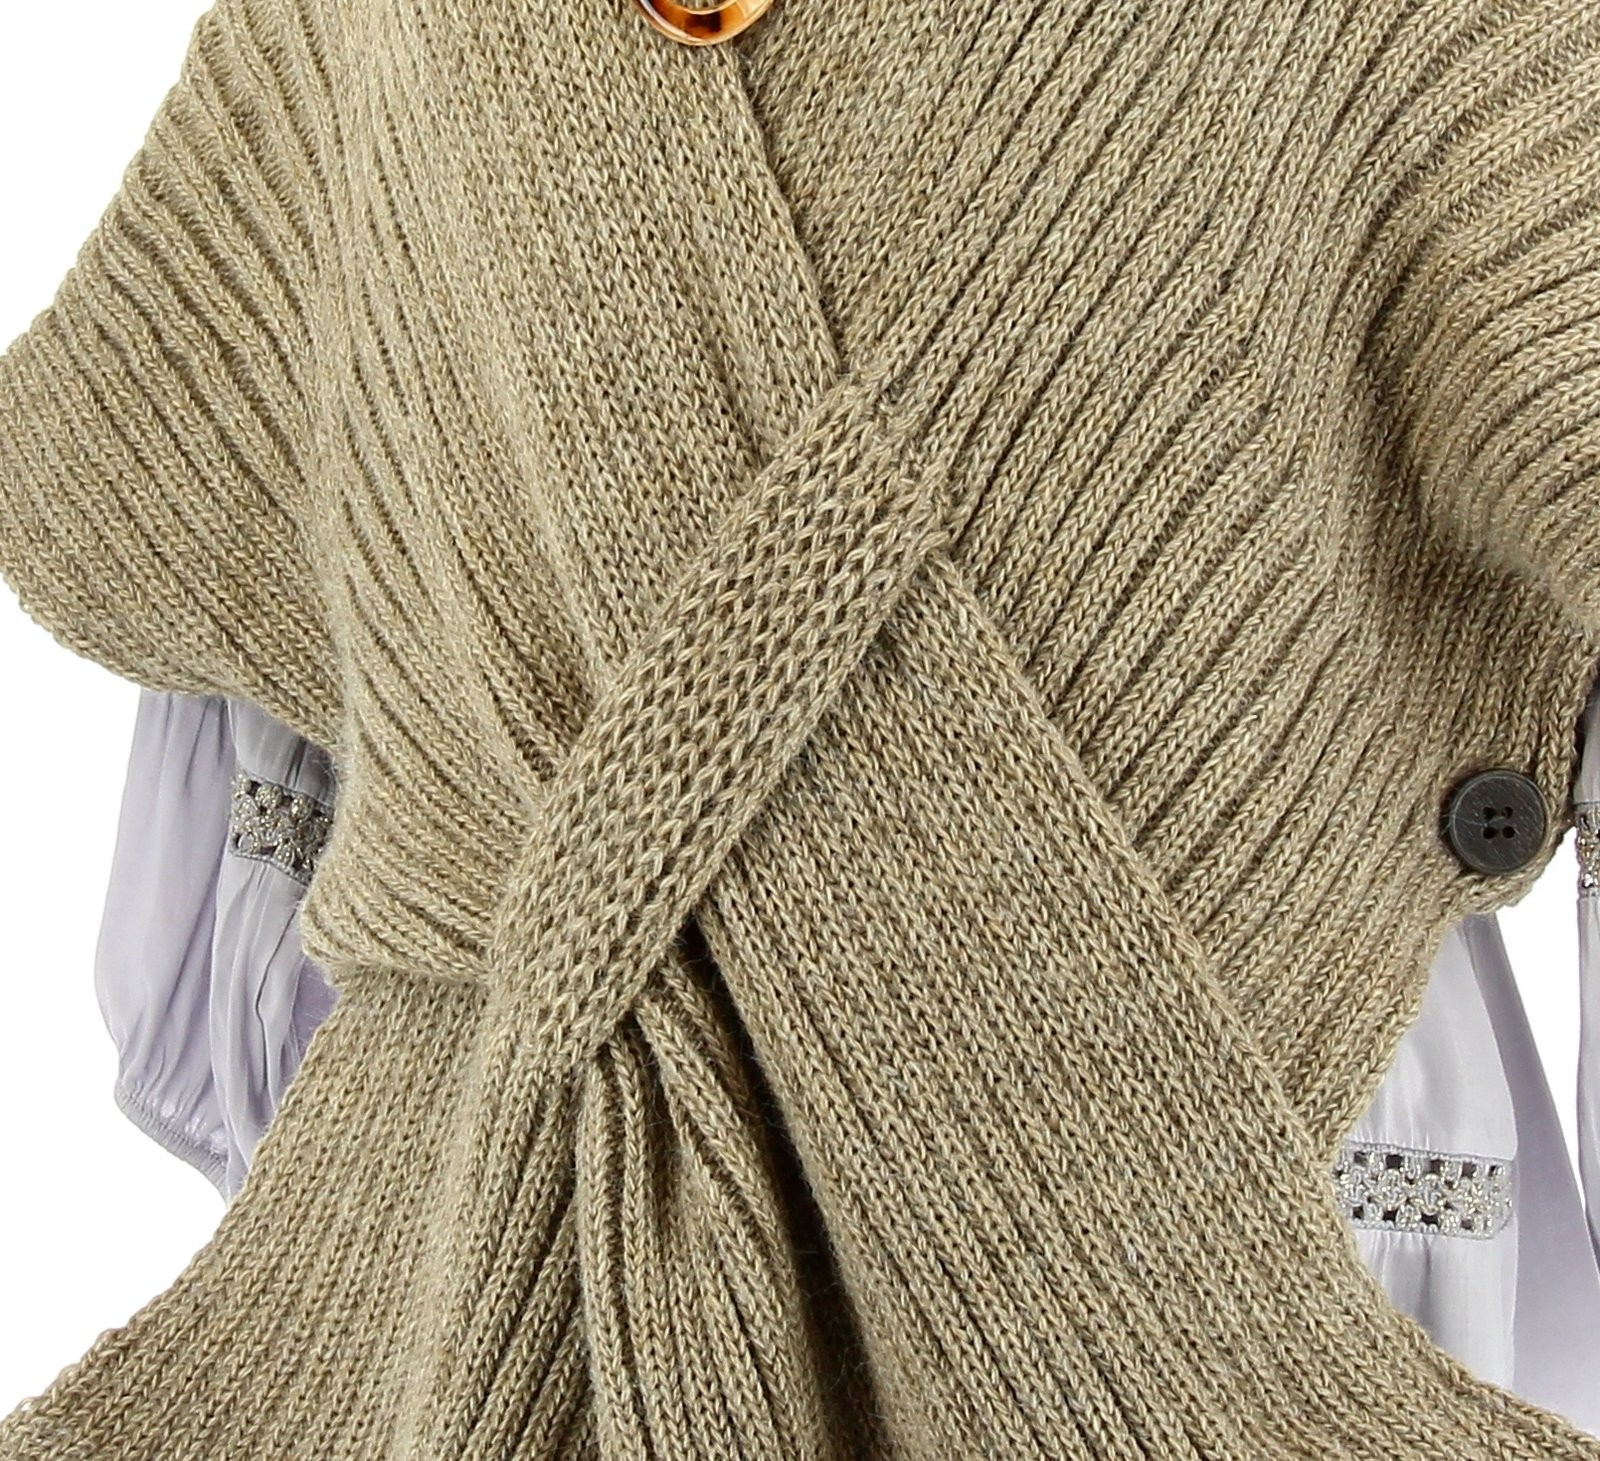 Gilet poncho laine alpaga grosse maille hiver taupe atos - Laine grosse maille ...